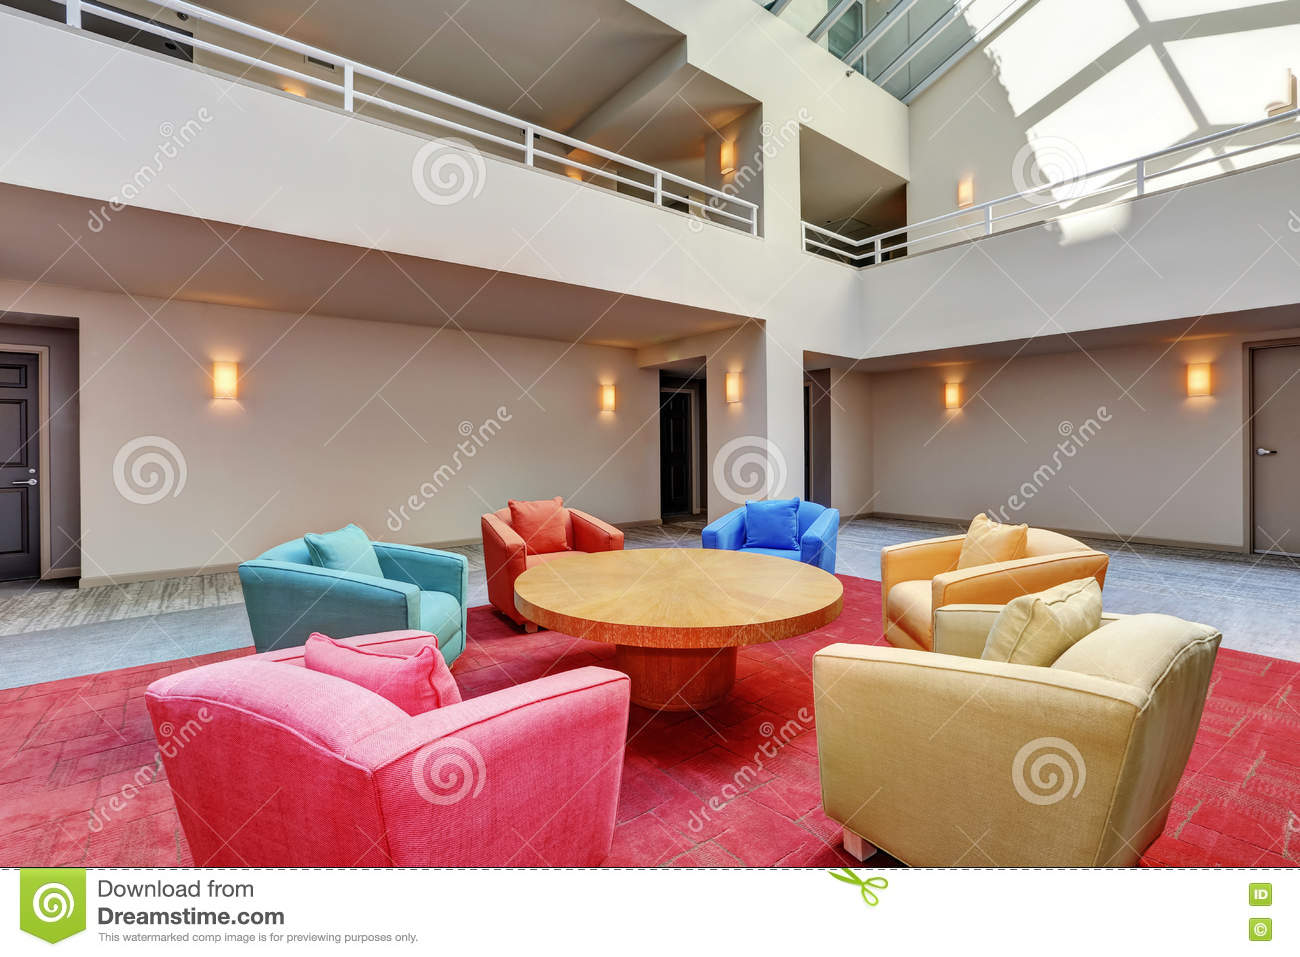 Lounge, Common Area Of Apartment Building. Interior Design. Stock ...